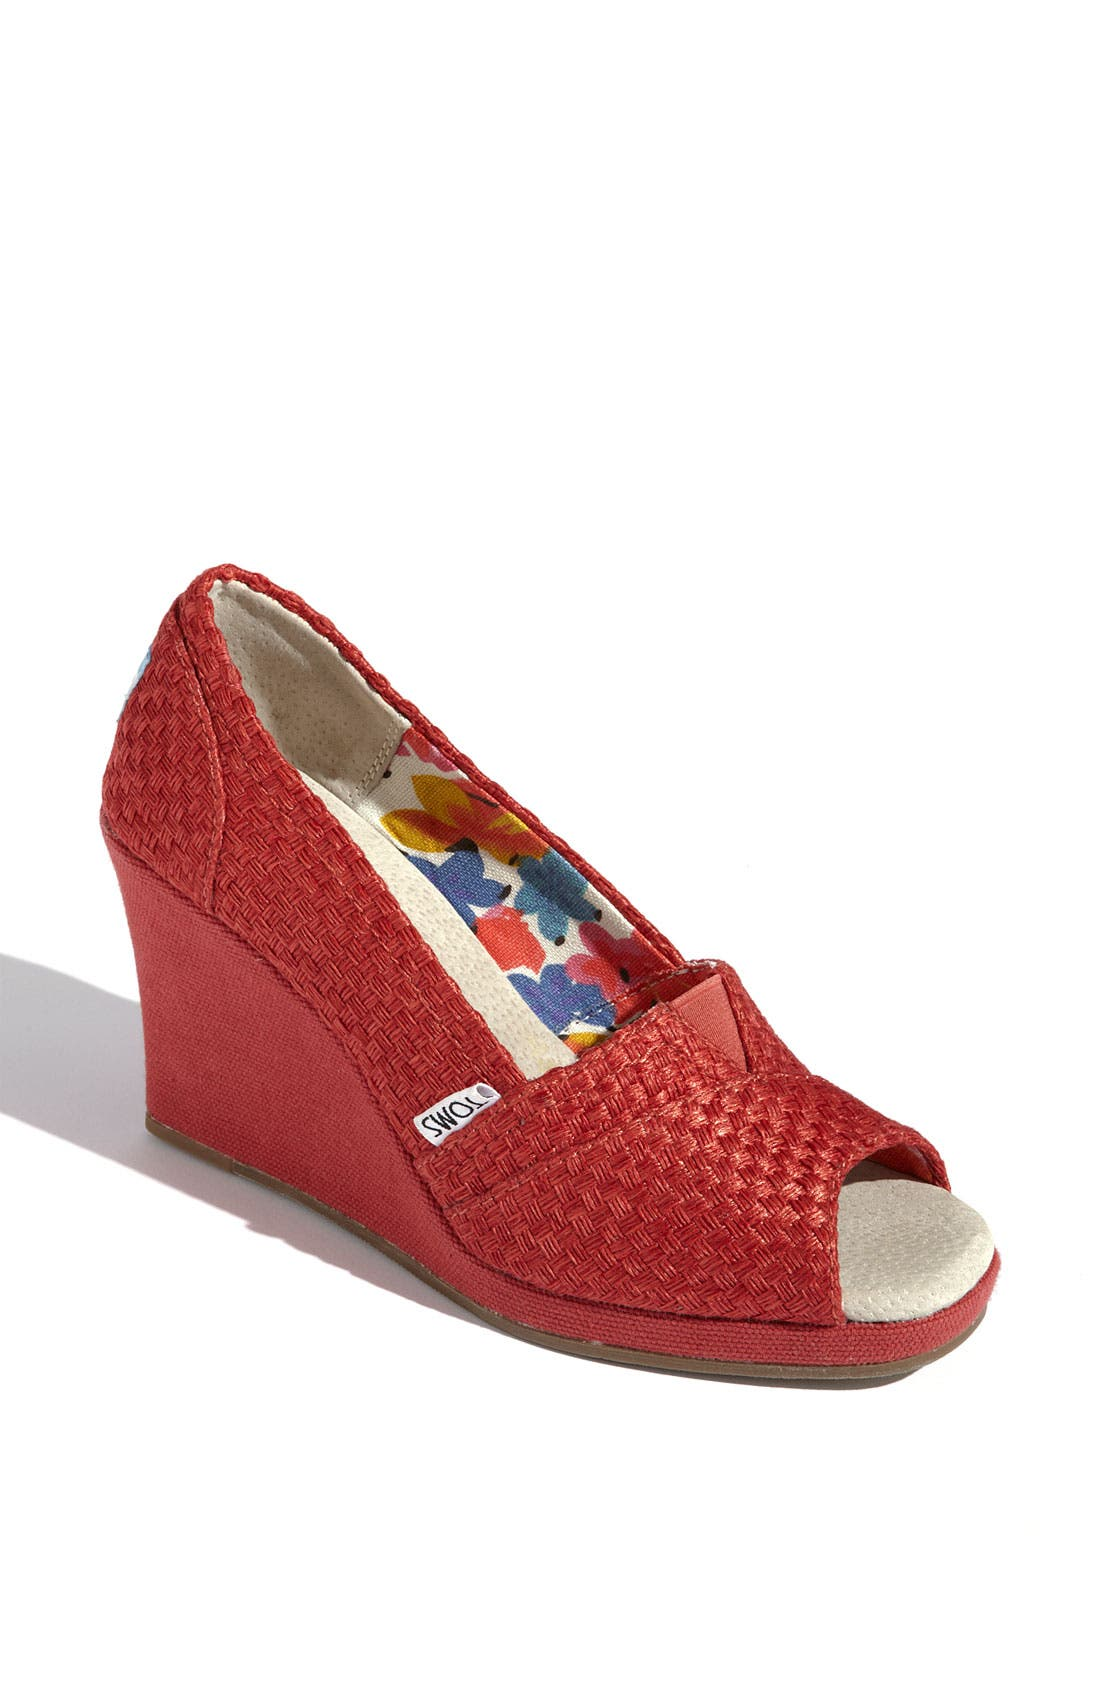 Alternate Image 1 Selected - TOMS 'Savannah' Wedge